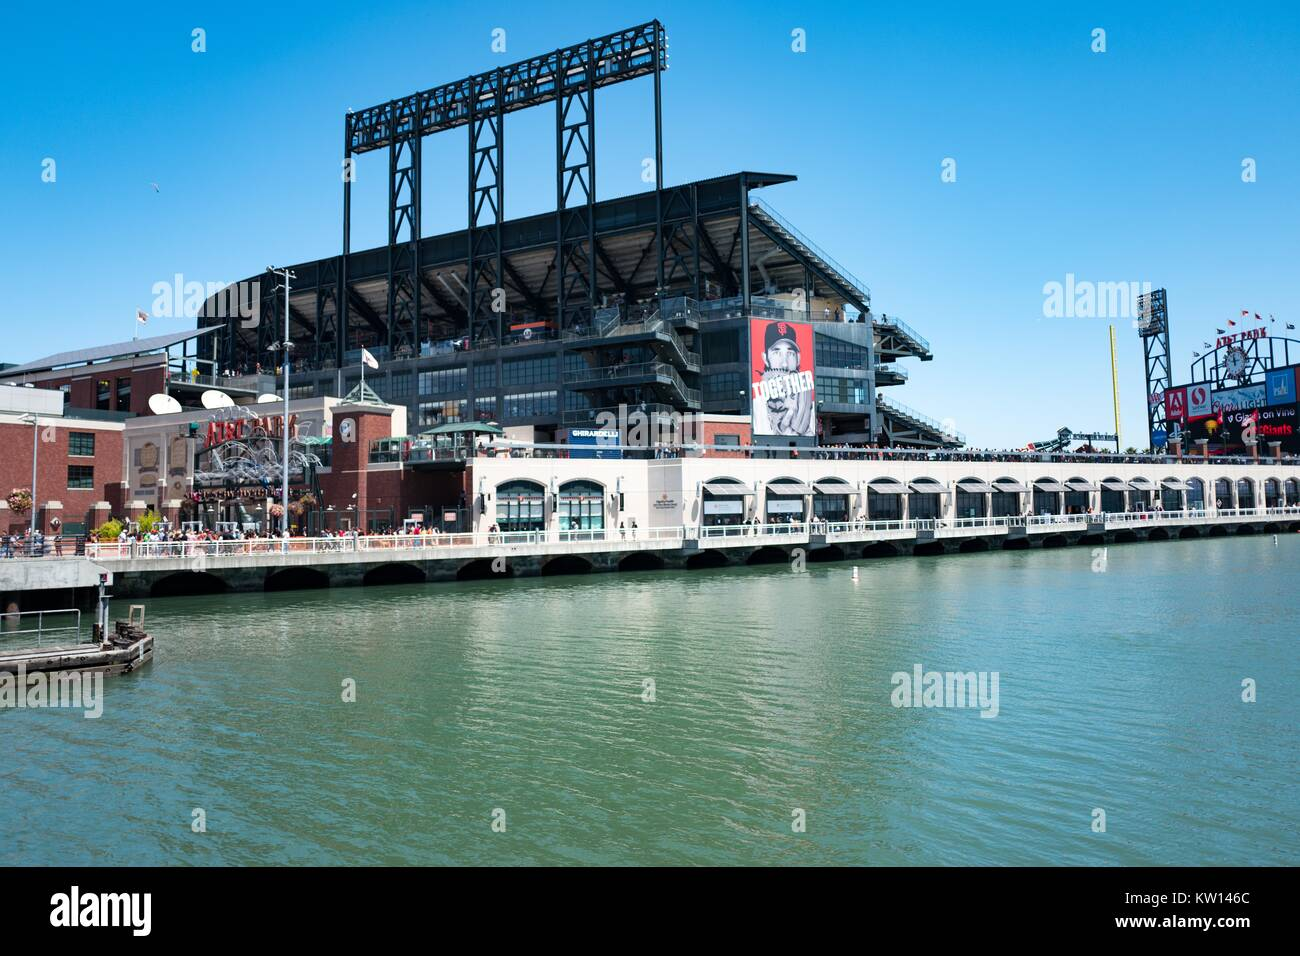 ATT Park baseball stadium, home of the San Francisco Giants baseball team, viewed from across McCovey Cove, San - Stock Image